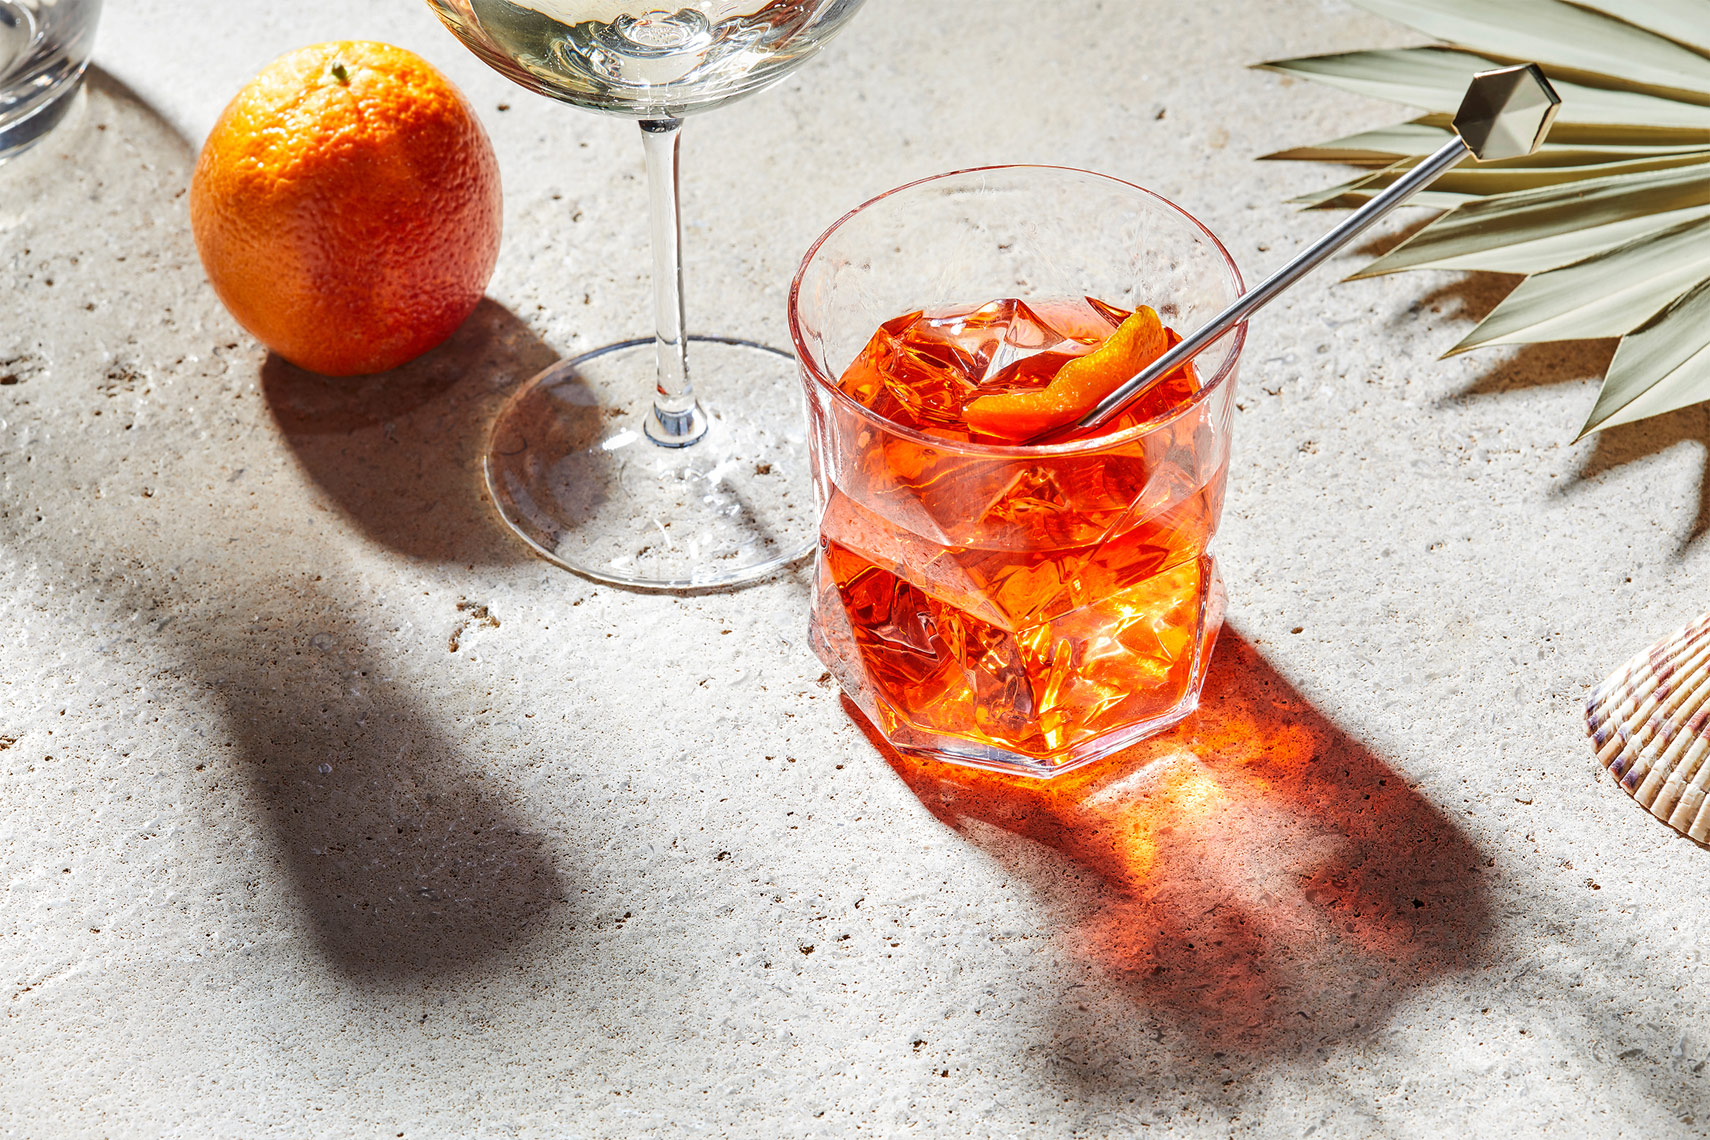 Marx_Food_Photography_Negroni_Cocktail